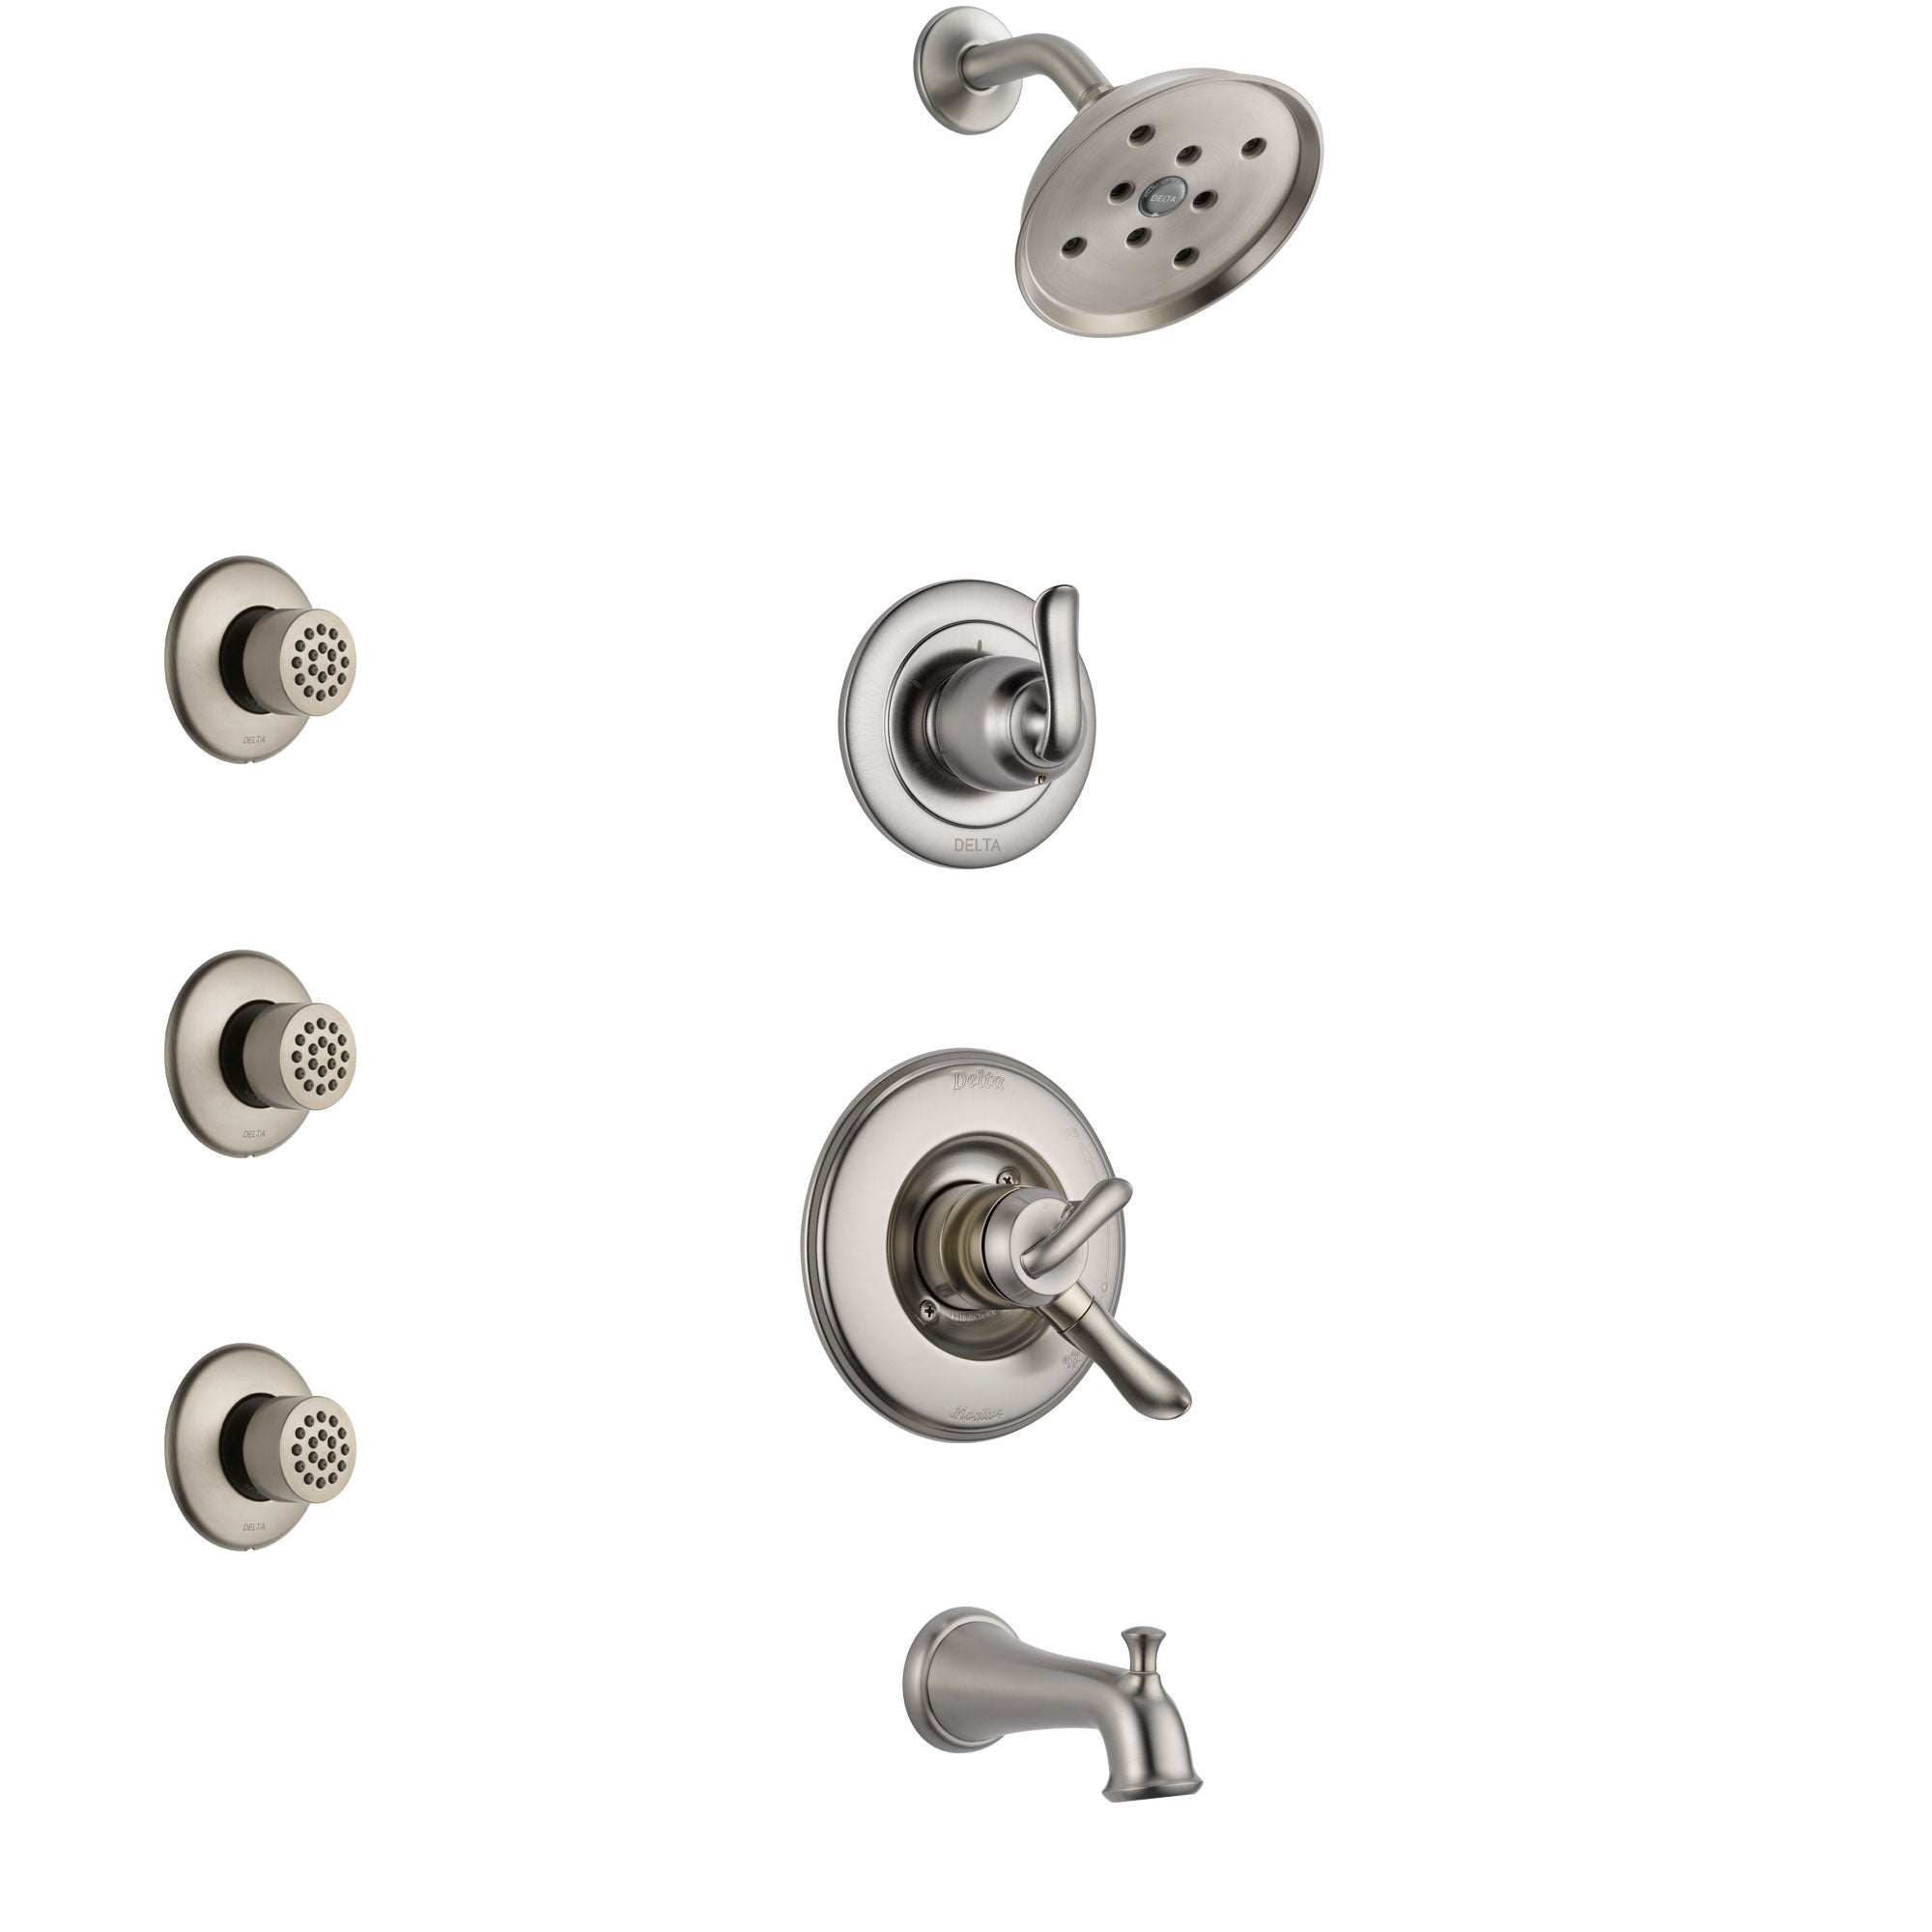 Delta Linden Stainless Steel Finish Tub and Shower System with Dual Control Handle, 3-Setting Diverter, Showerhead, and 3 Body Sprays SS17494SS2